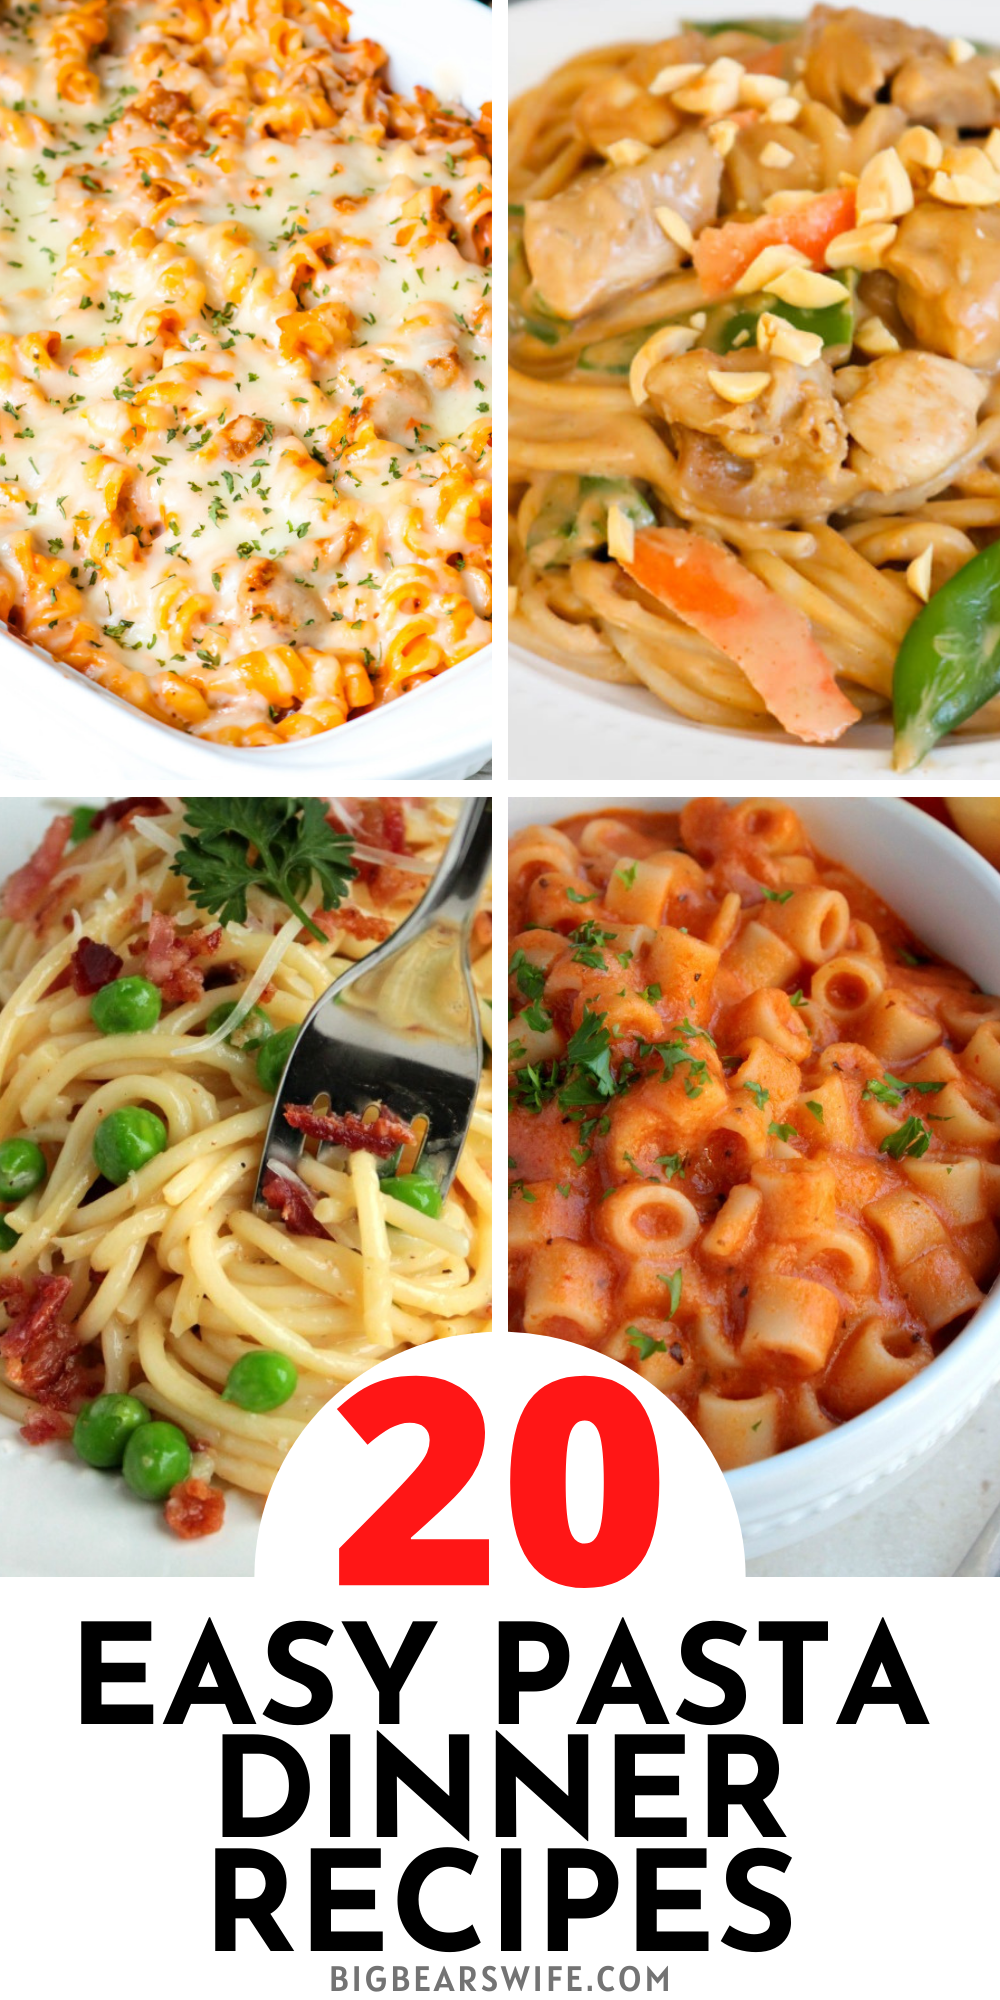 20 Easy Pasta Dinner Recipes - Here you'll find 20 Easy Pasta Dinner Recipes that are perfect for weekday dinners and perfect for feeding your family! These quick and easy pasta recipes are some of our favorite family pasta dinner ideas! via @bigbearswife